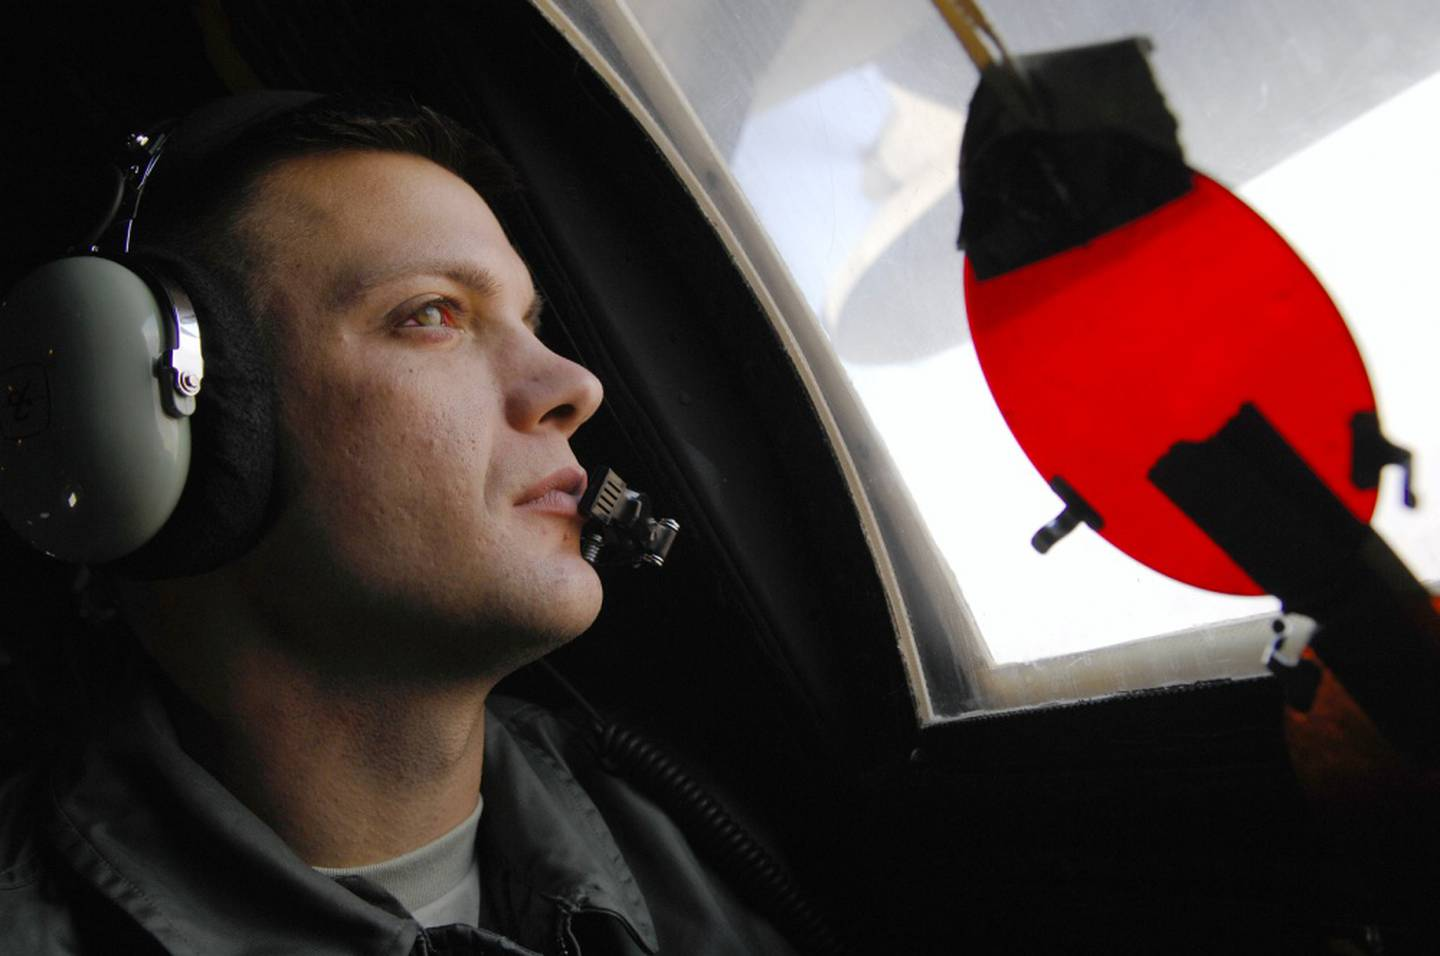 Staff Sgt. Jeremy Mayo, a 9th Special Operations Squadron loadmaster, learns how to signal an incoming U.S. Army MH-60K Blackhawk assigned to the 101st Airborne Division over Fort Campbell, Kentucky, Dec. 2, 2008. While the aerial refueling is taking place the loadmaster must be vigilant for any signs of difficulty and relay information to the pilots and flight engineer. (Senior Airman Julianne Showalter/Air Force)